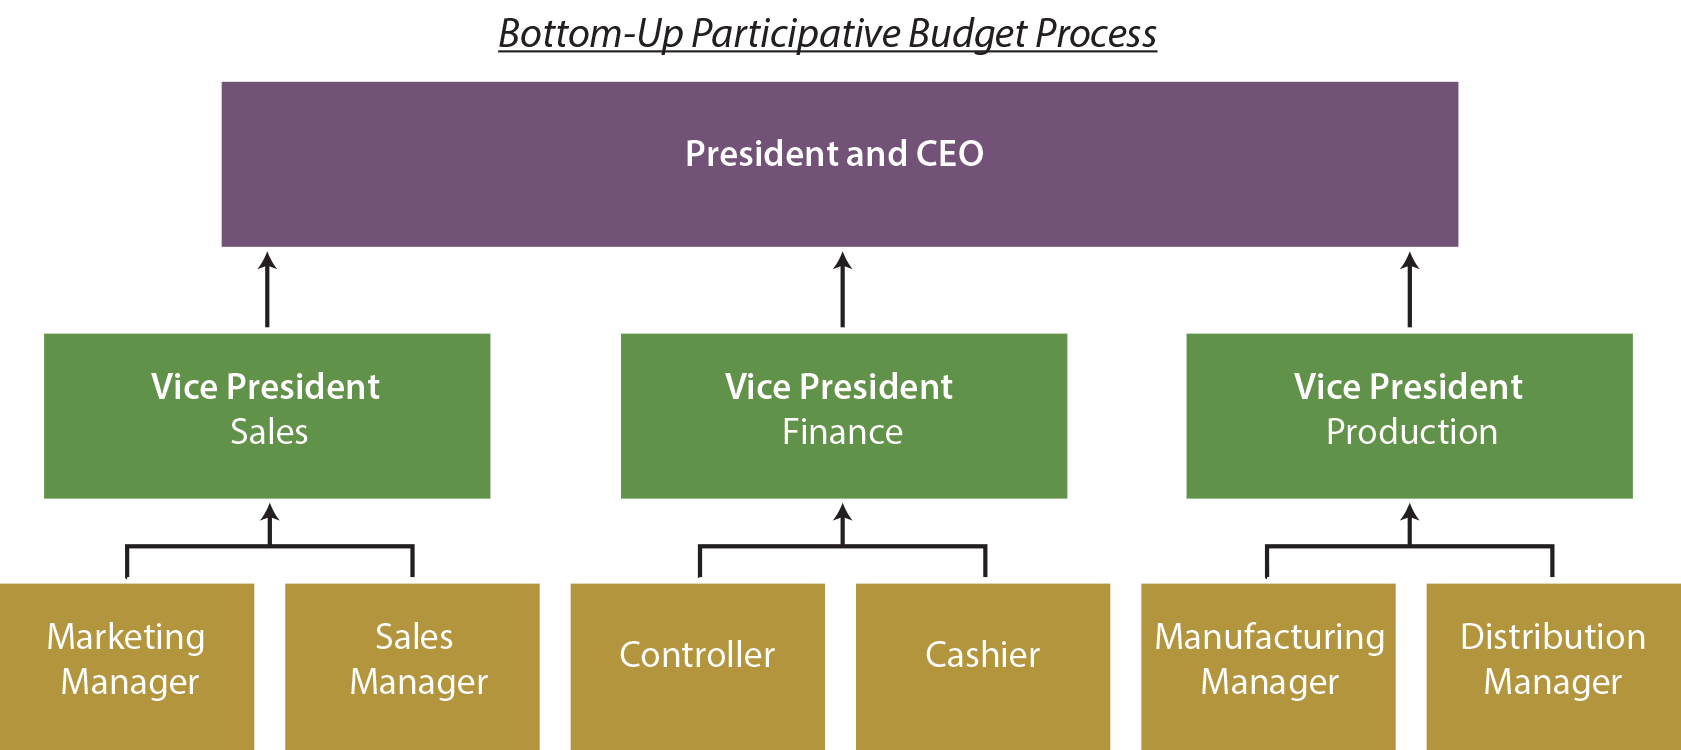 Bottom-Up Budget Process Diagram